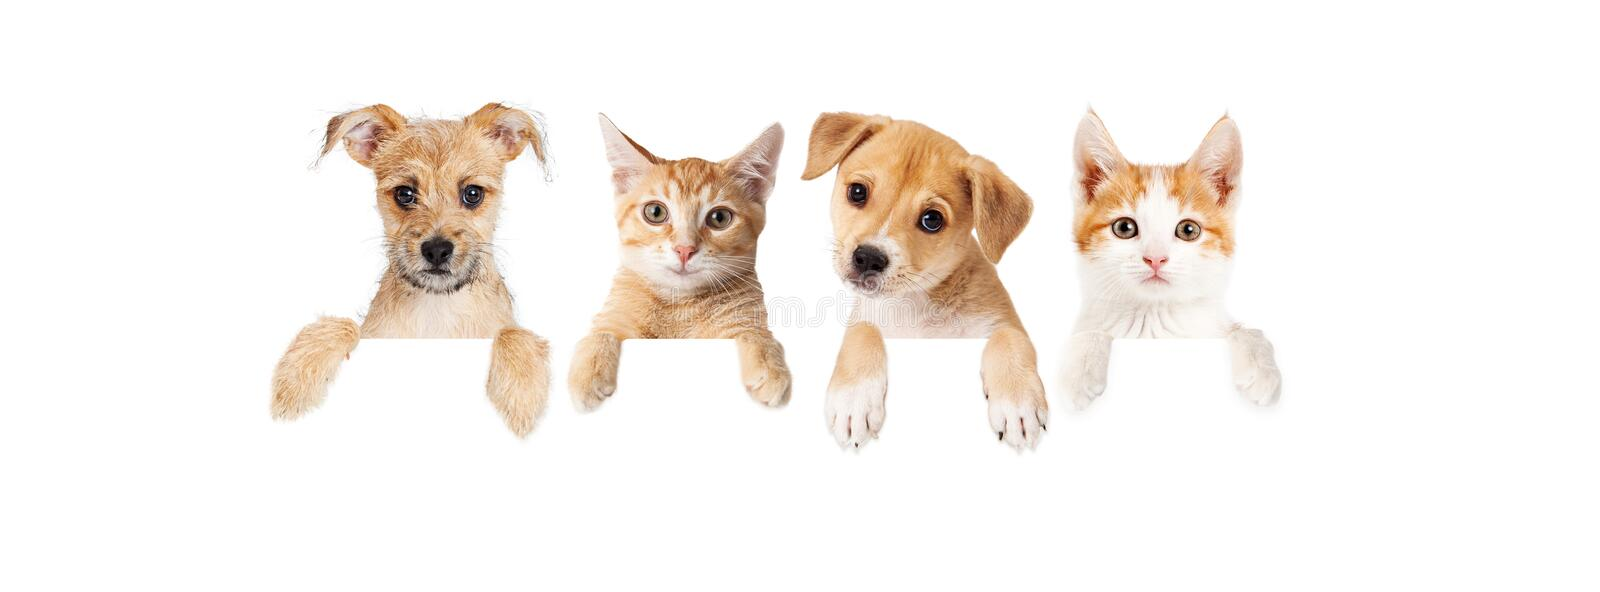 365 Puppies Kittens Photos Free Royalty Free Stock Photos From Dreamstime